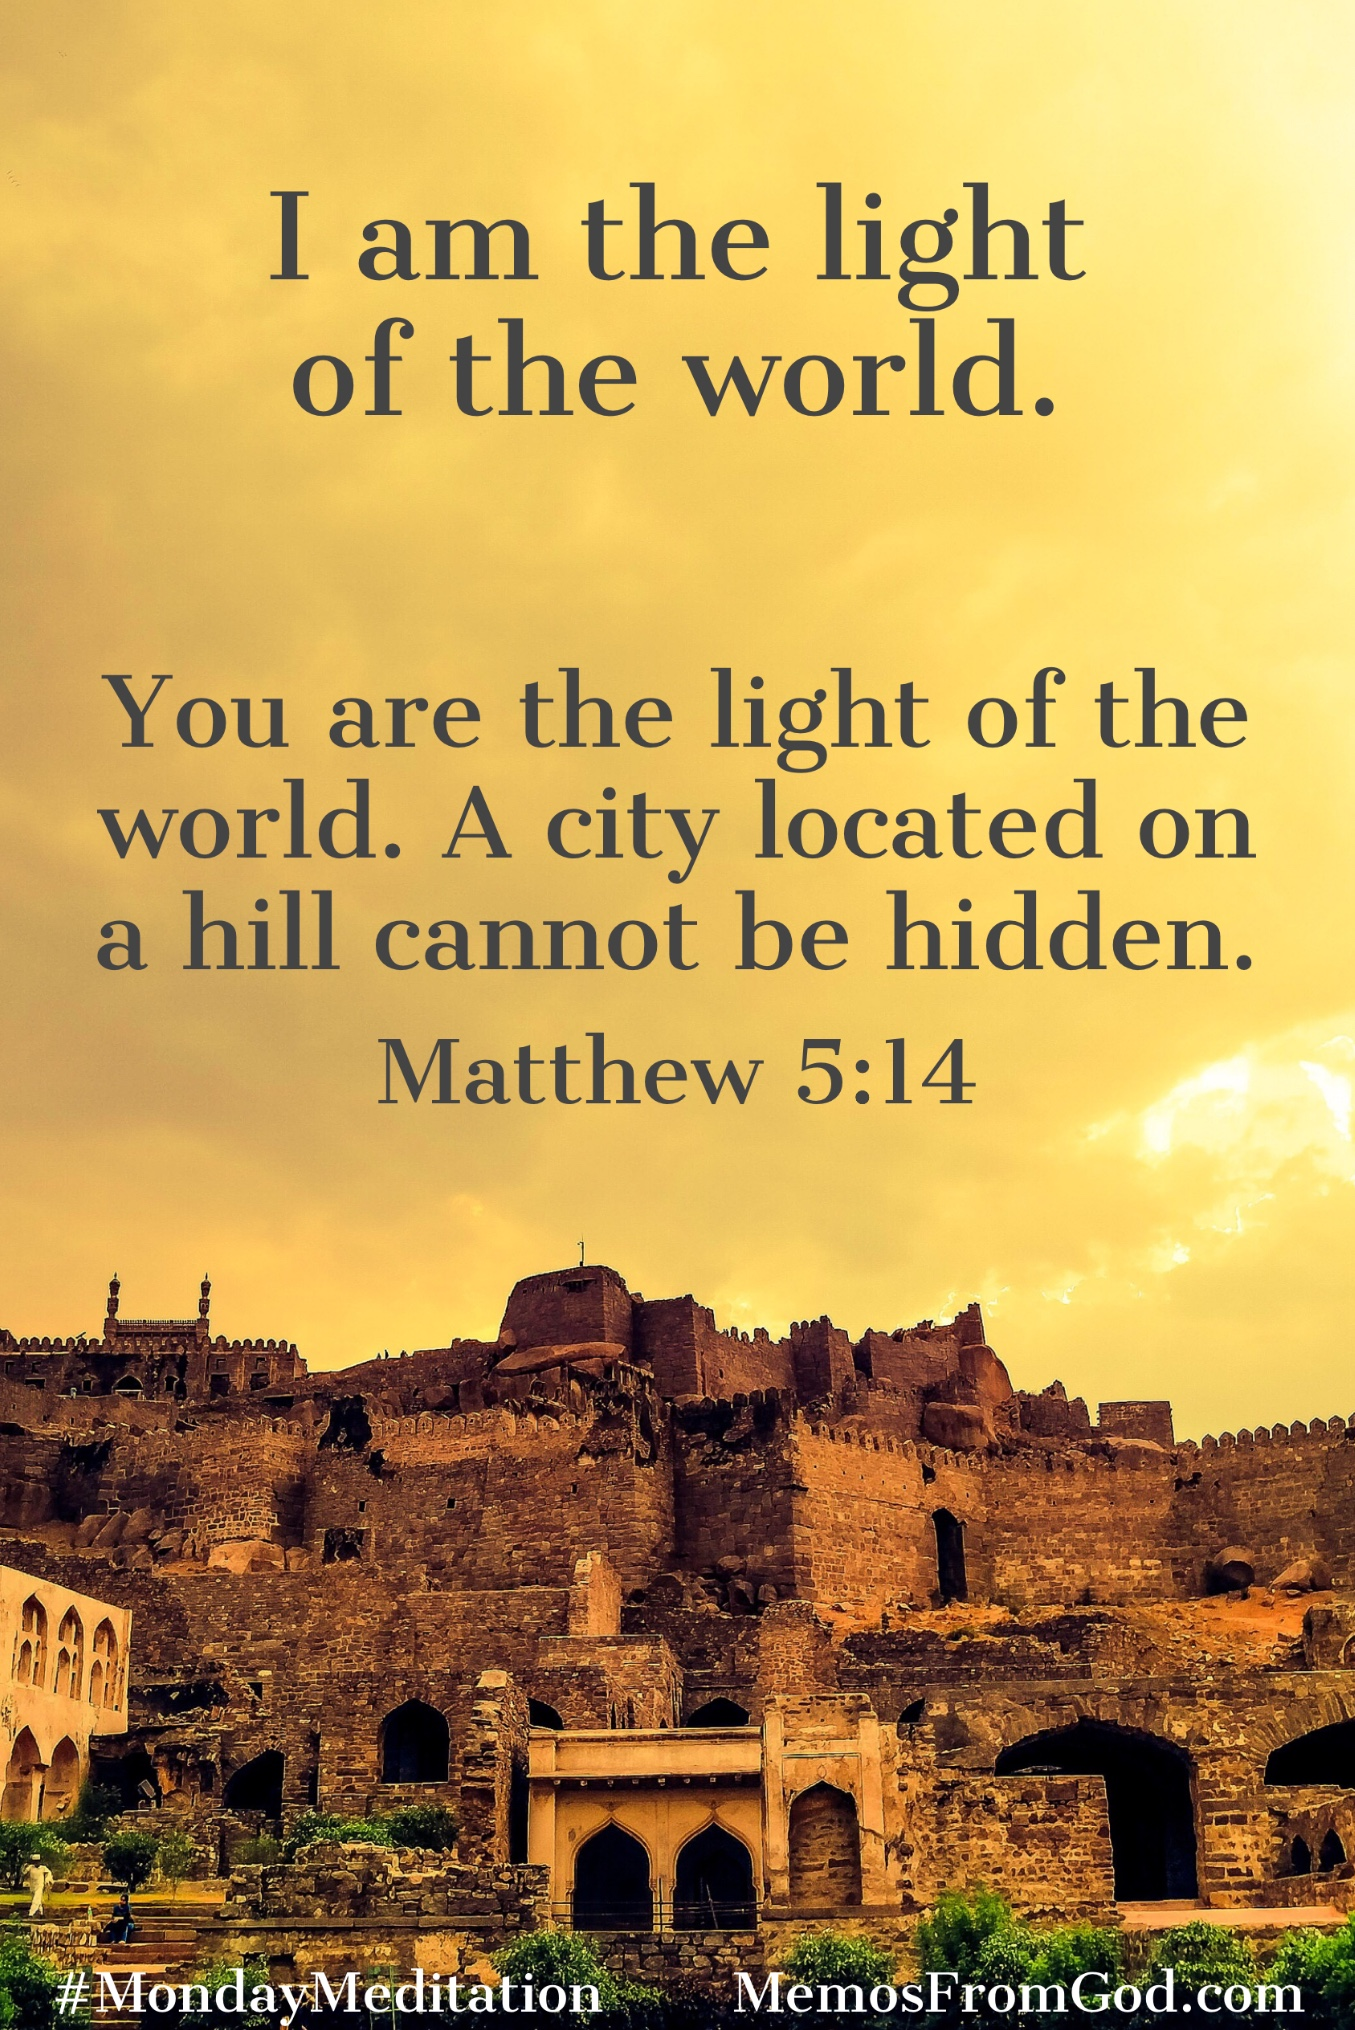 Ancient buildings on a hill under a bright, yellow sky. Caption: You are the light of the world. A city located on a hill cannot be hidden. Matthew 5:14